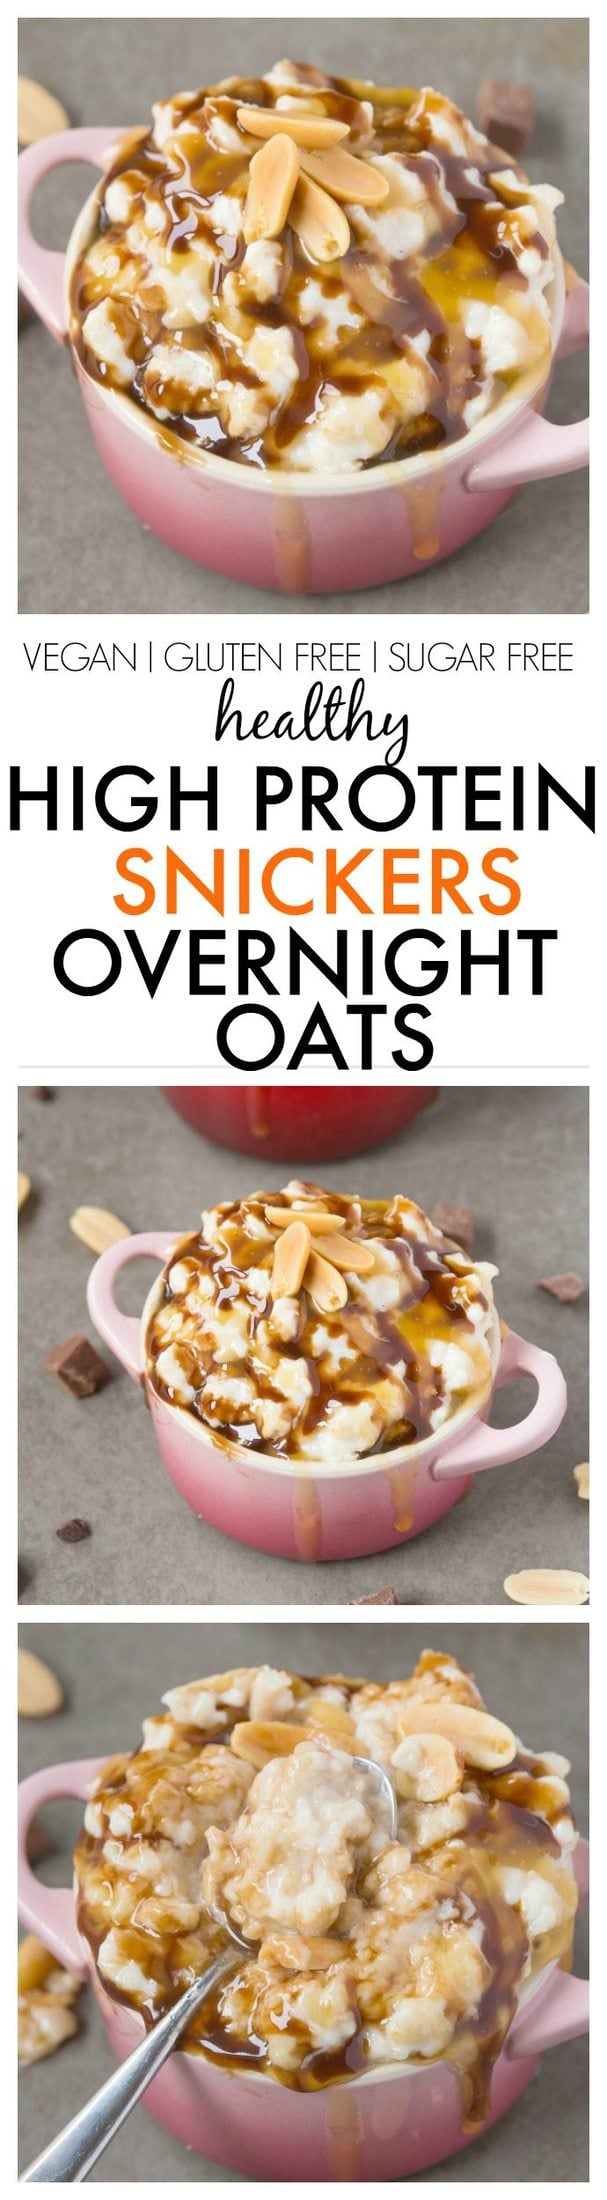 Healthy High Protein Snickers Overnight Oats- Easy, delicious and totally dessert for breakfast but with NO sugar or nasties! It tastes just like a snickers bar! {vegan, gluten free, sugar free recipe}- thebigmansworld.com